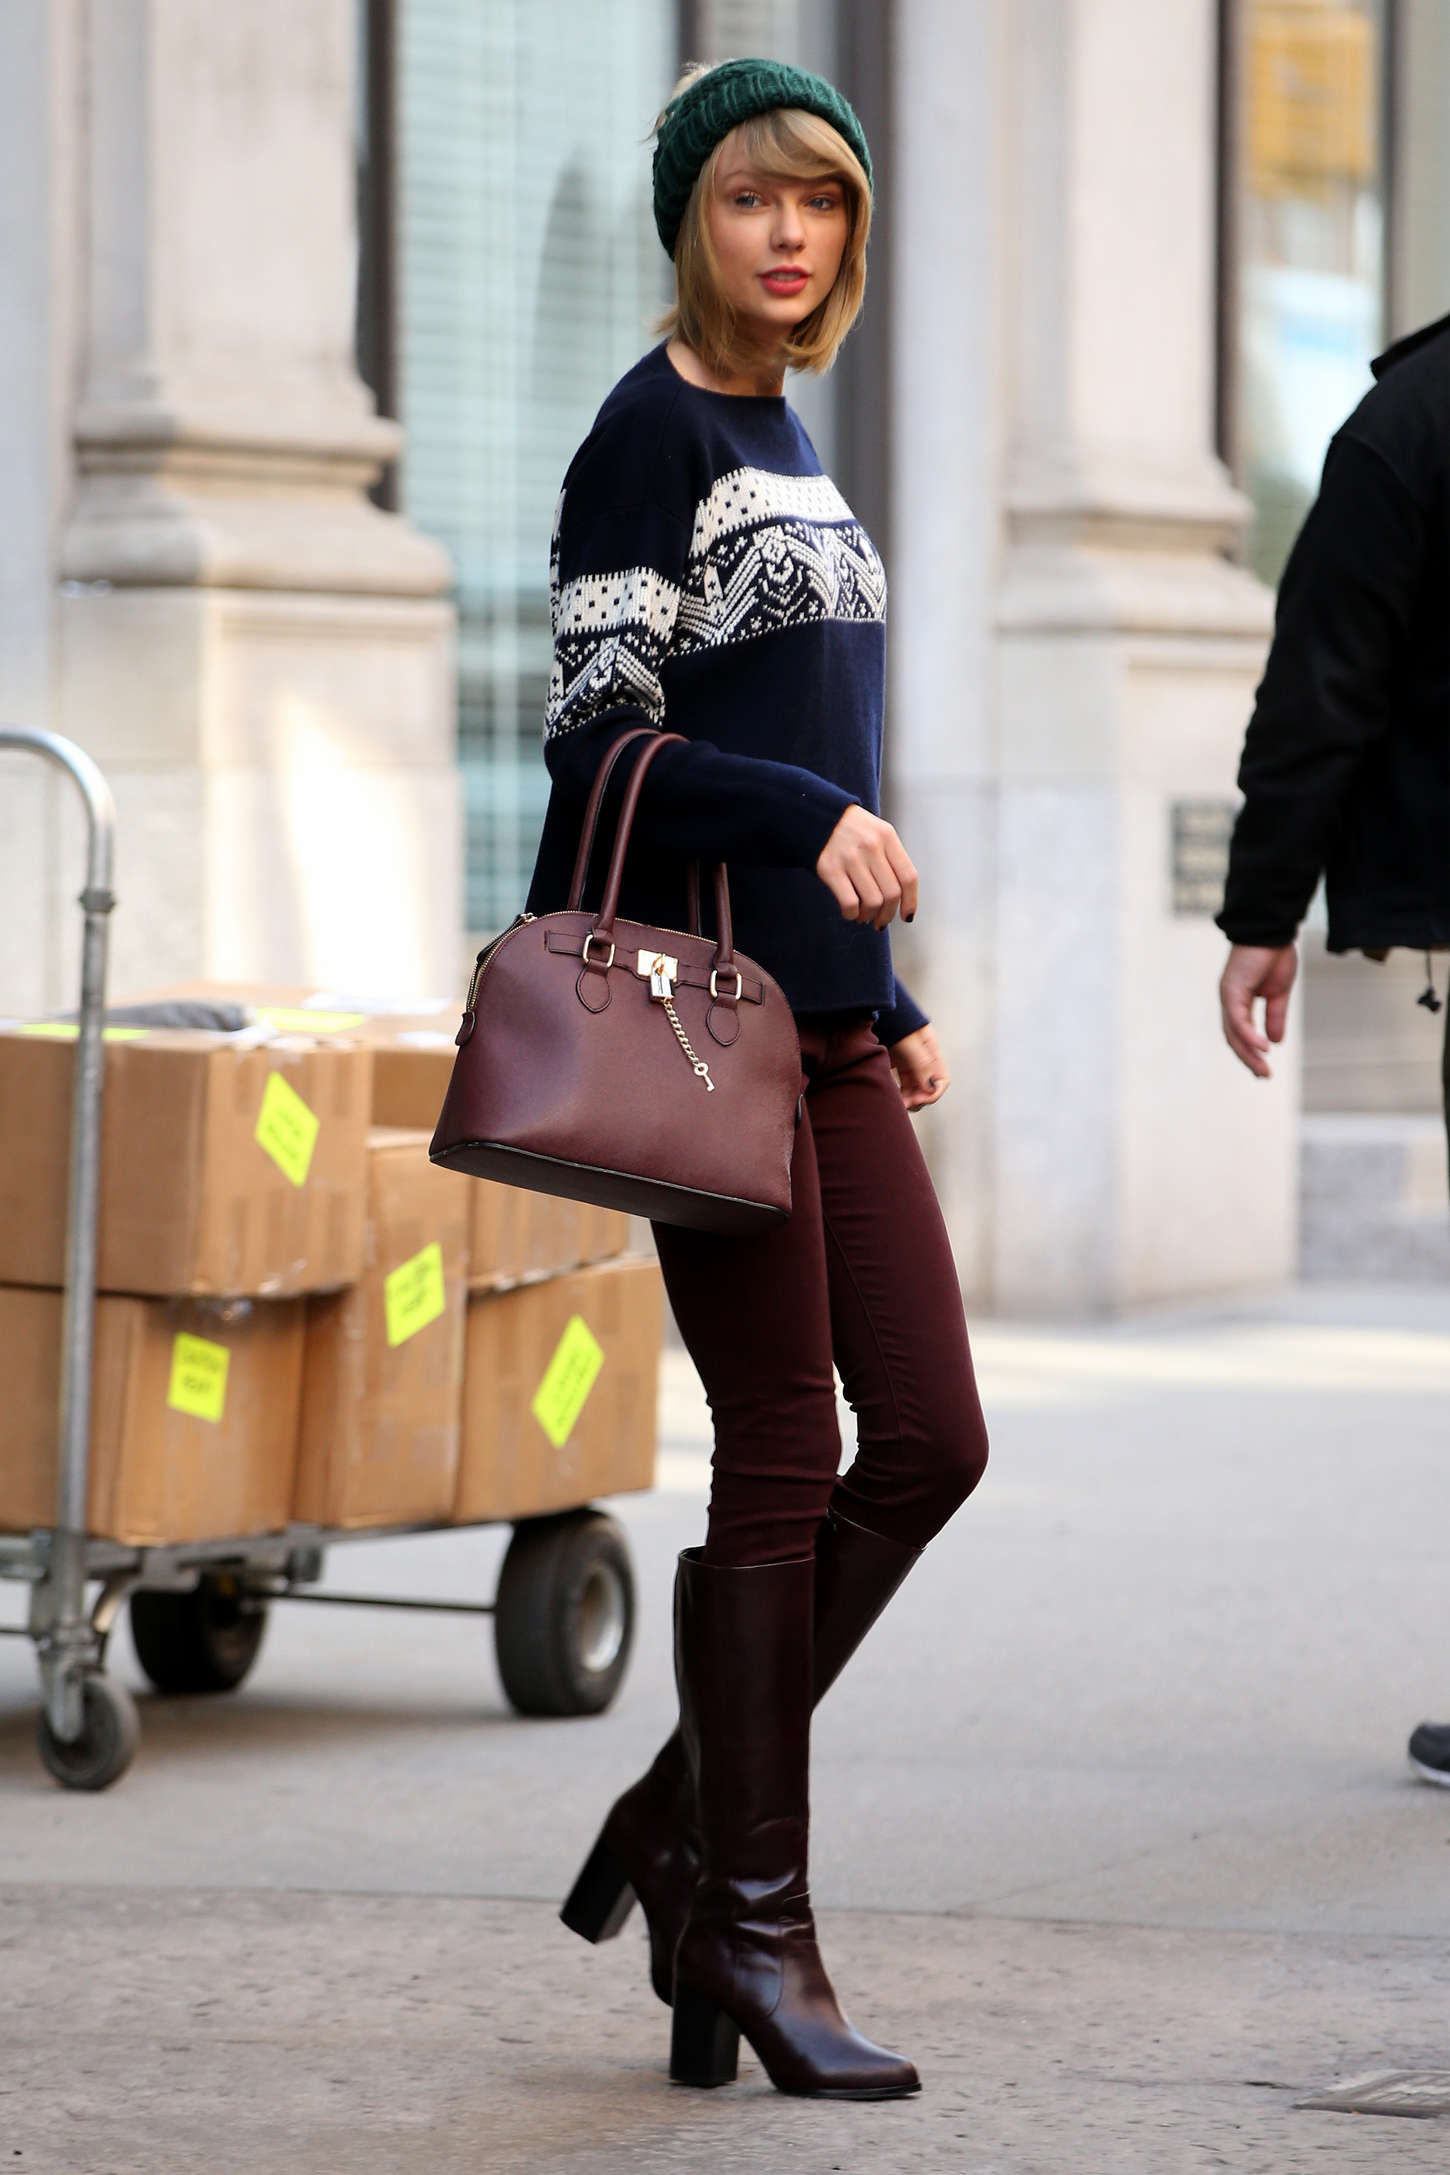 Taylor Swift In Tight Pants And Boots 20 Gotceleb